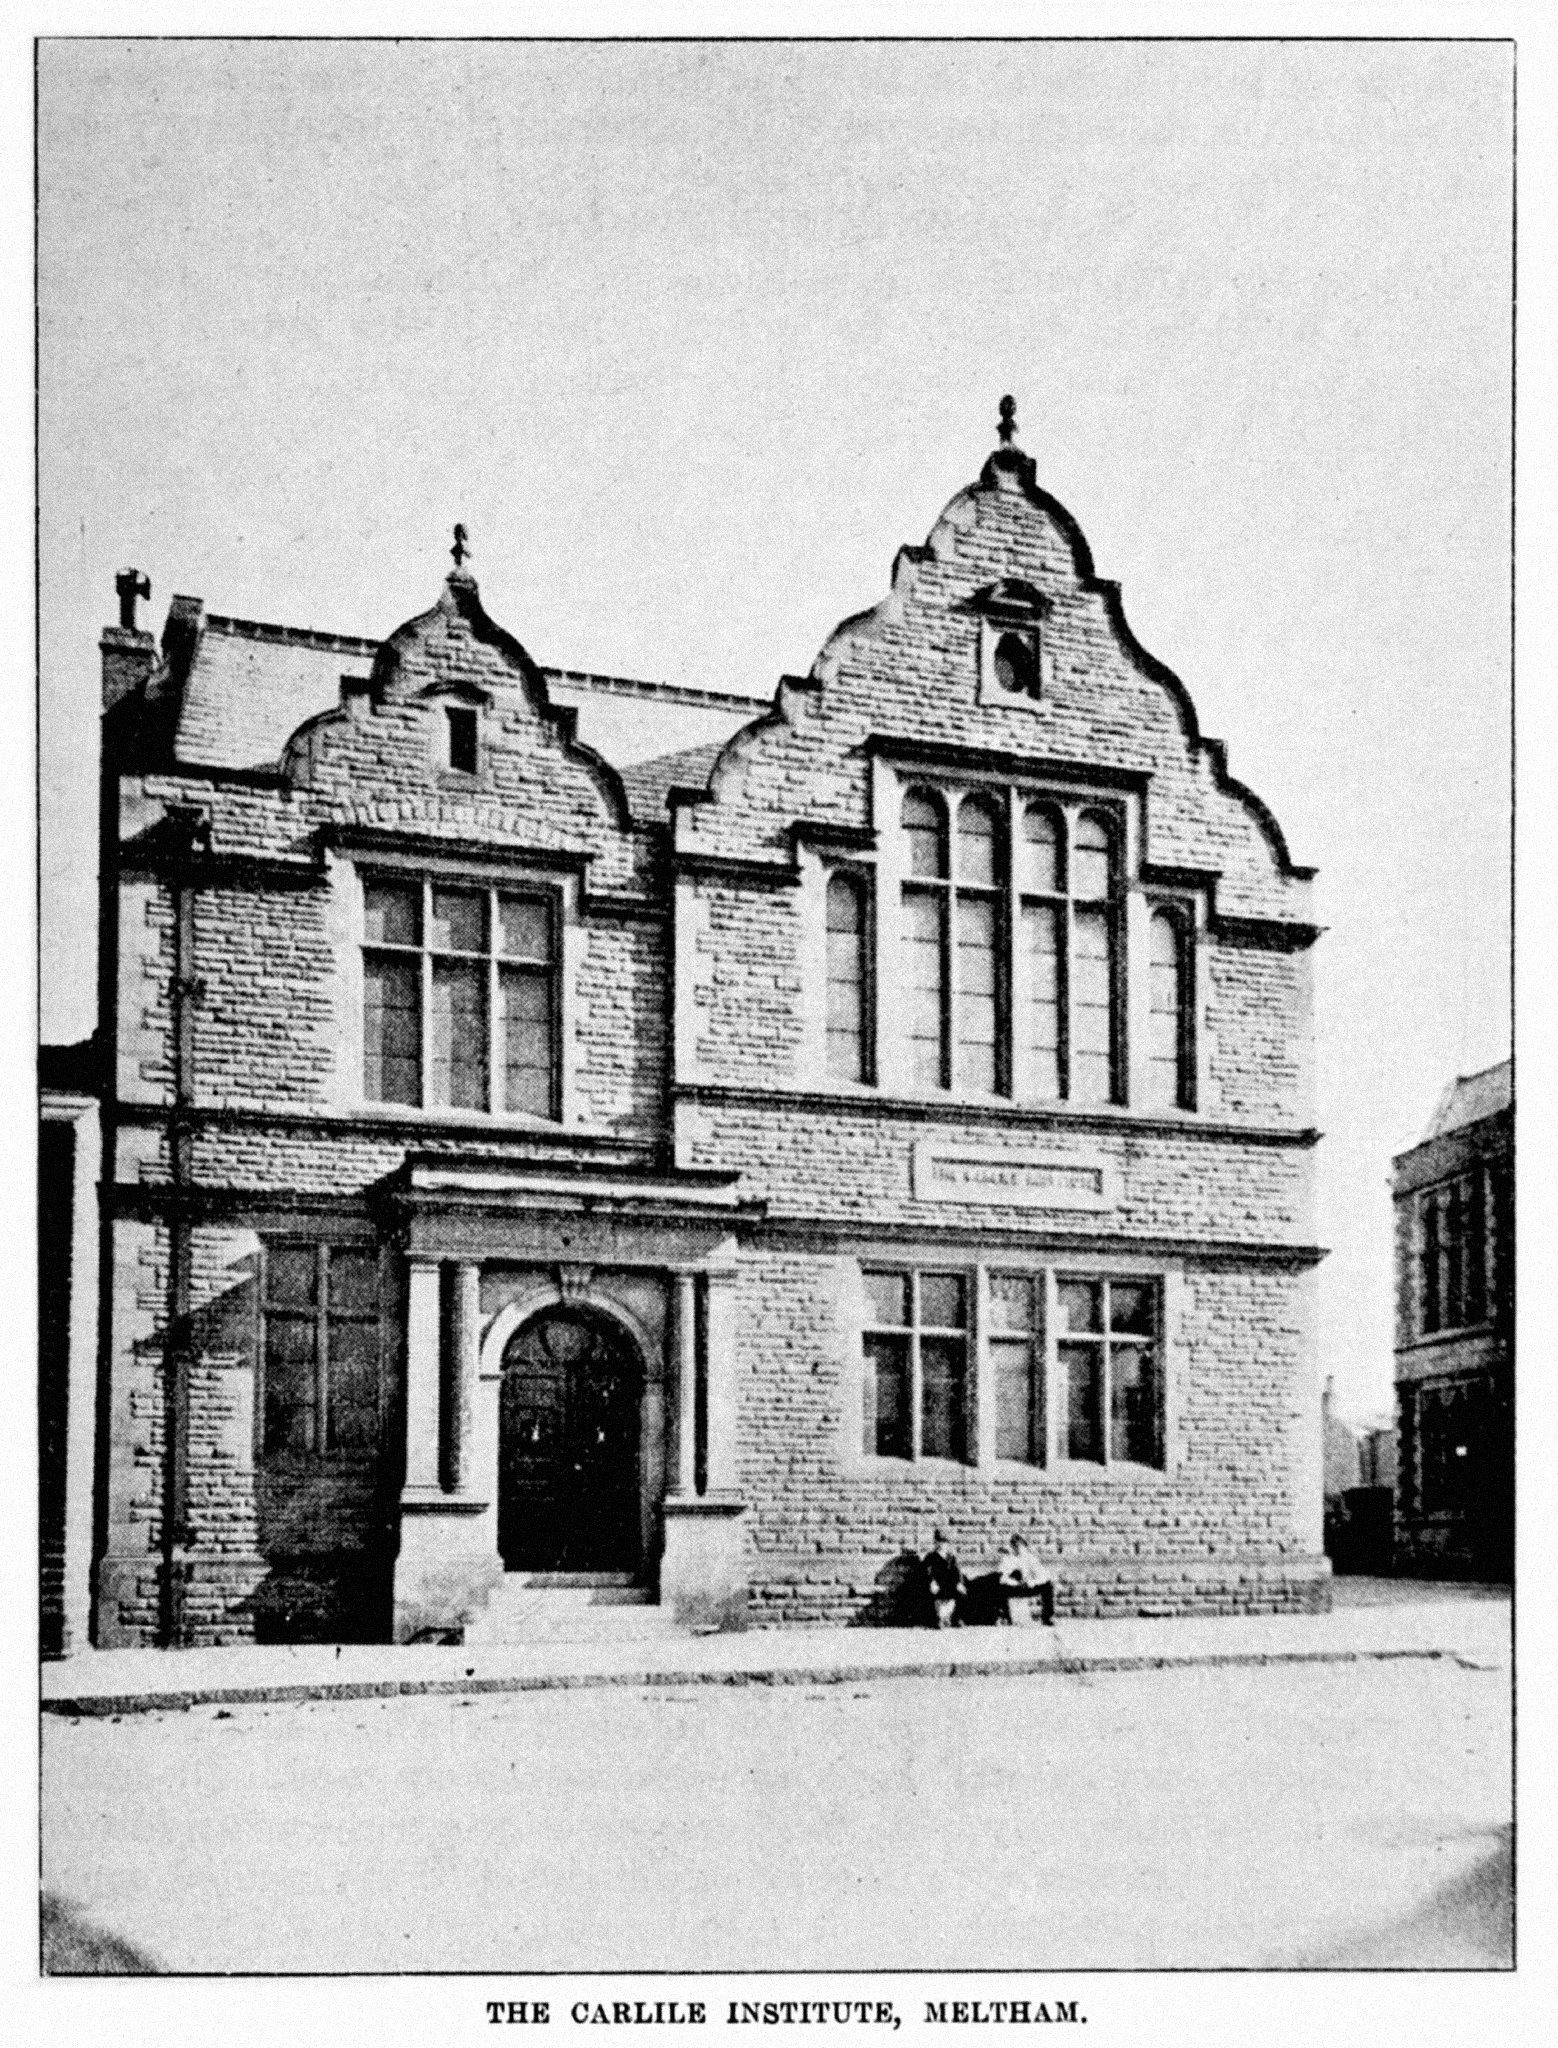 Photograph of the Carlile Institute from the late 1890s.